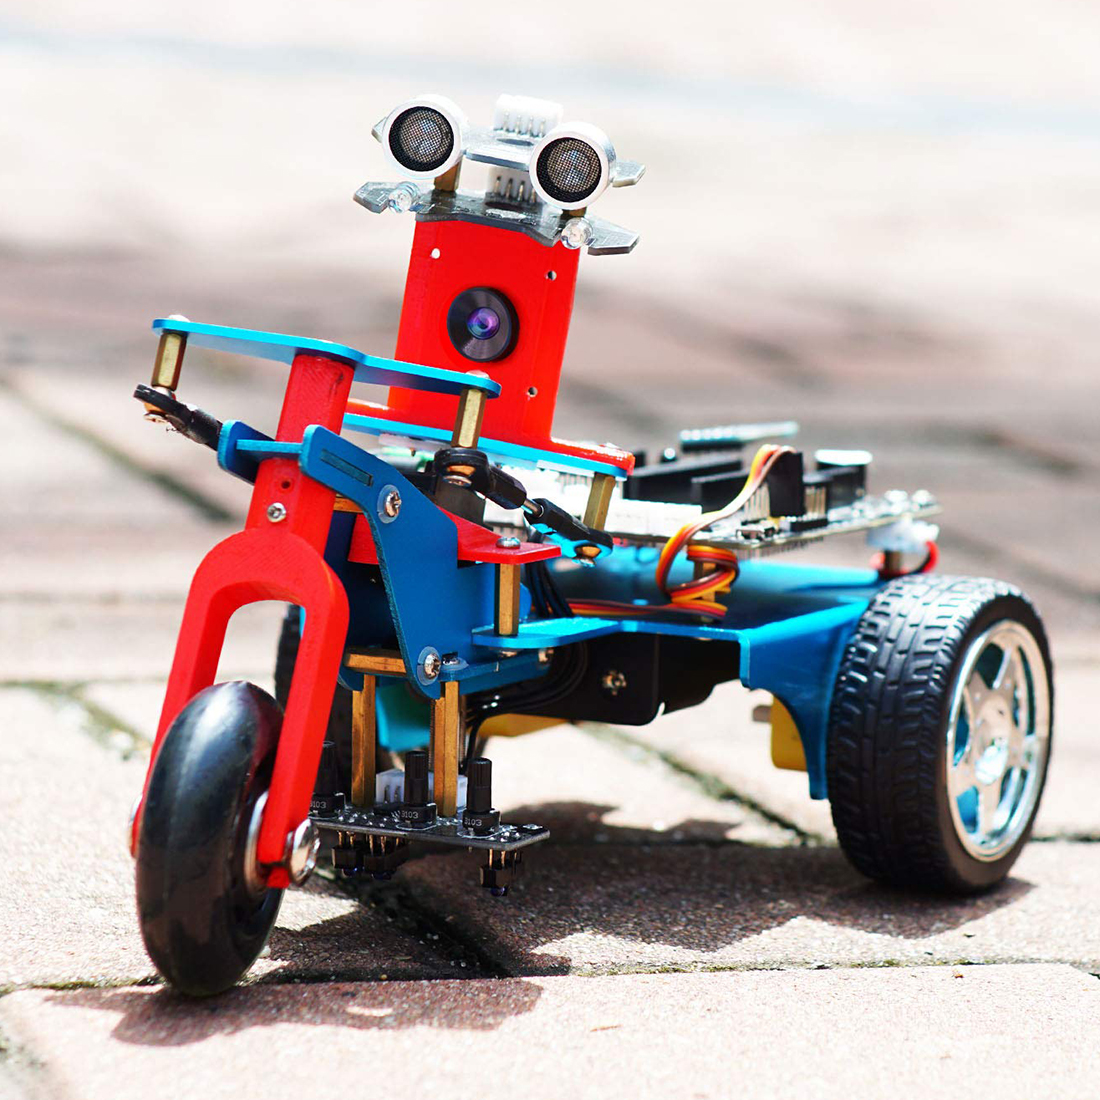 TrikeBot Smart Robot Car Kit Programmable Toys Learning With HD Camera DIY Robot Kit With Raspberry 4B ( 1G/2G/4G Memory )